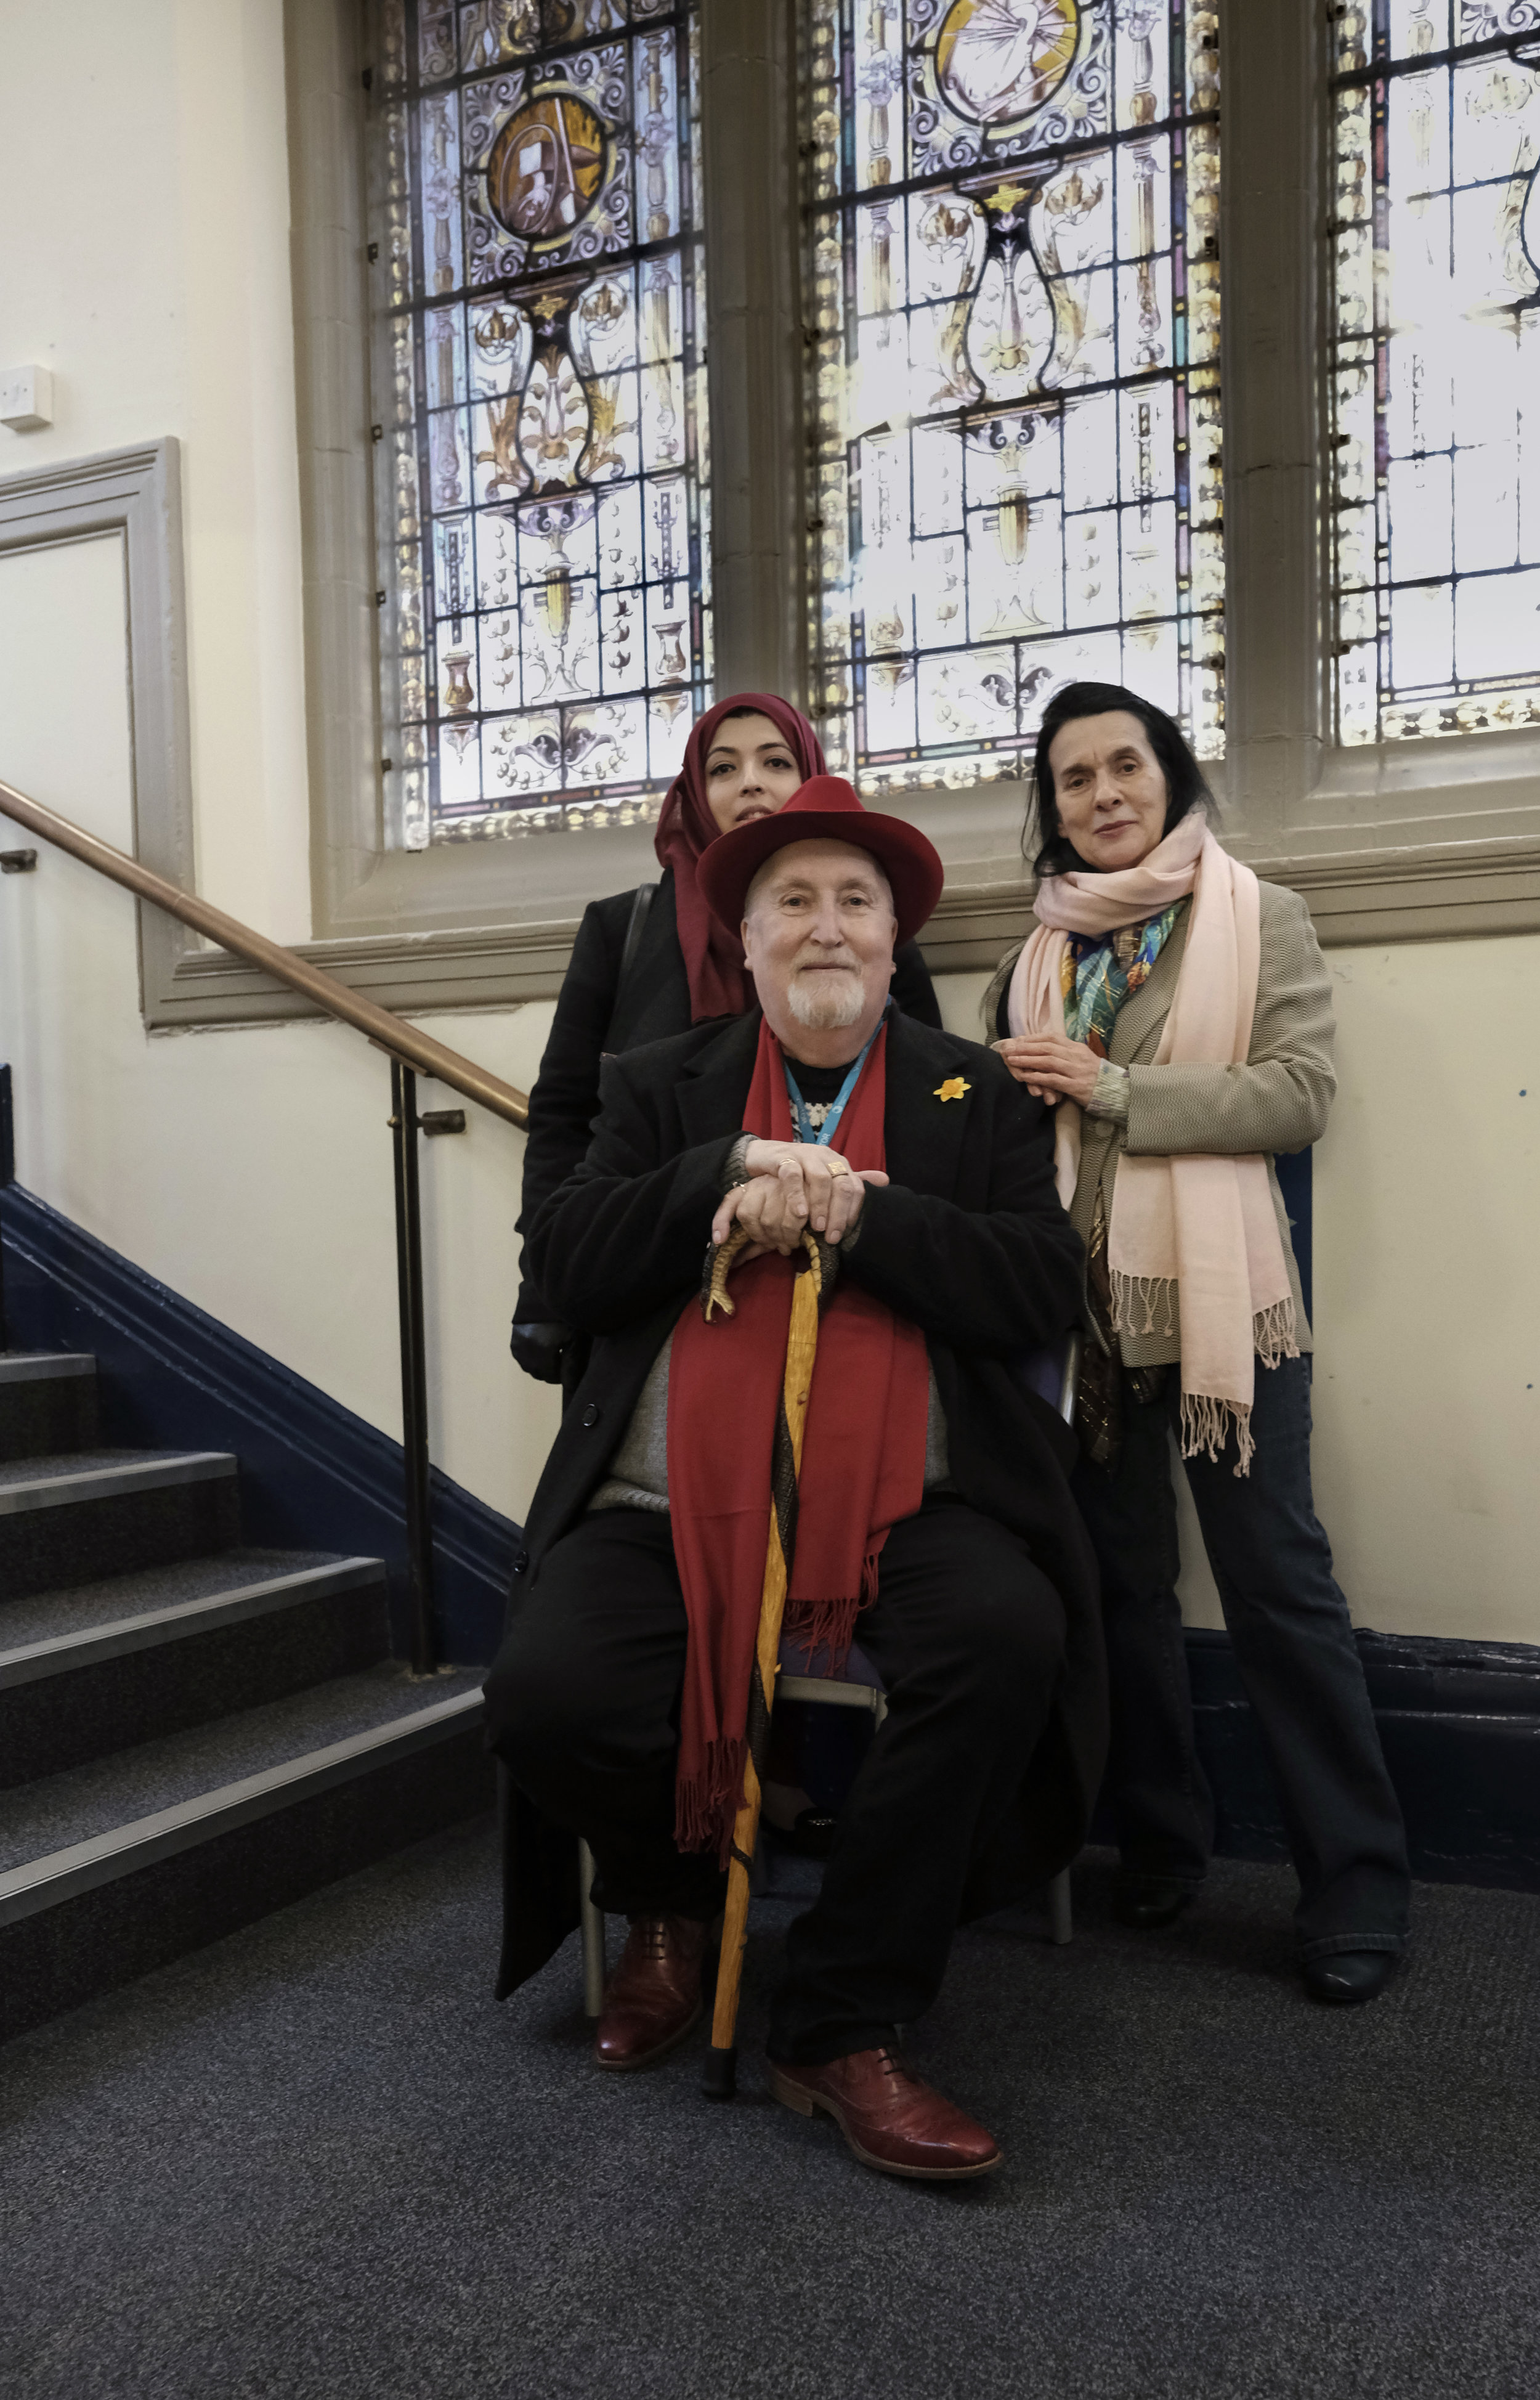 Pausing for a rest on the journey to the top floor of the Art College, James with Safina Iqbal and Christine Marsden